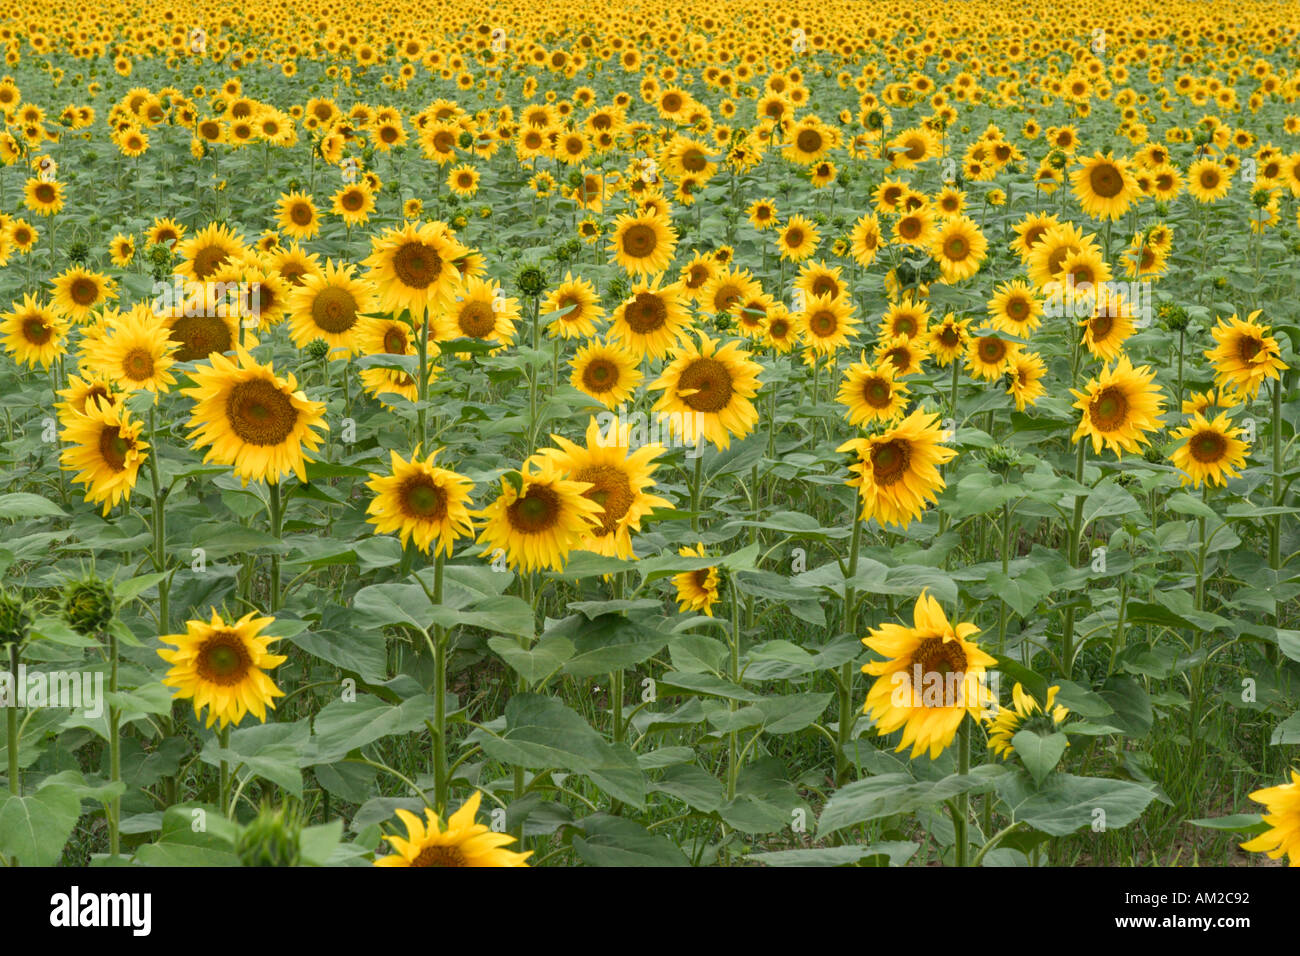 Sunflowers, Southern France - Stock Image